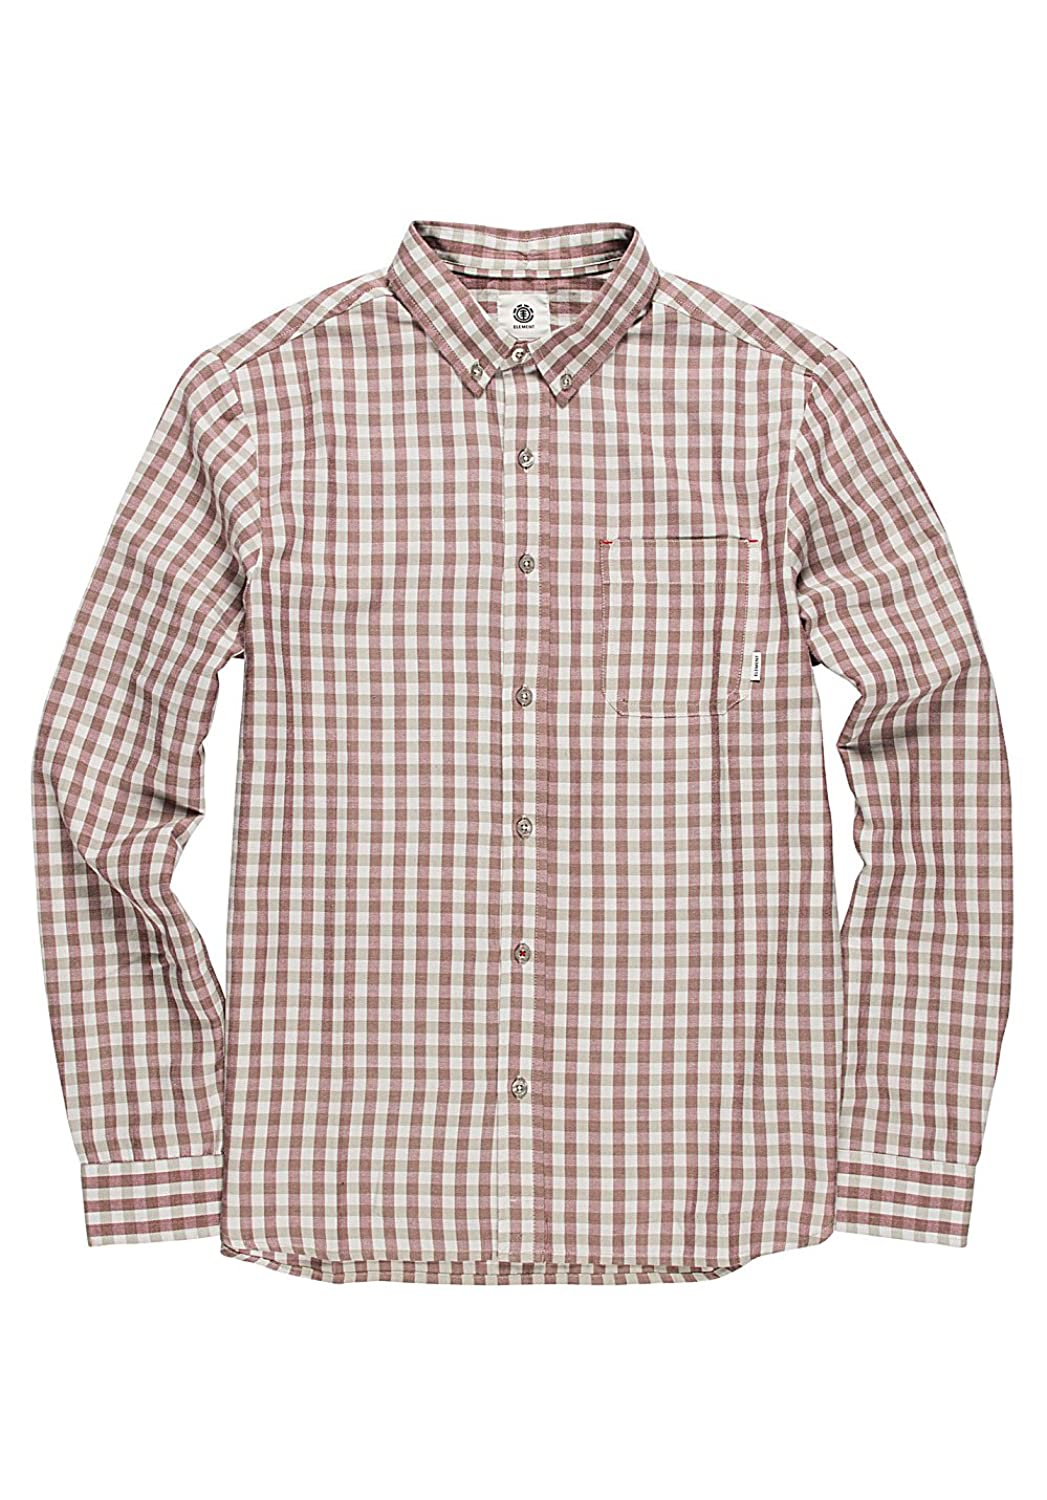 Herren Hemd lang Element Buckley Shirt LS